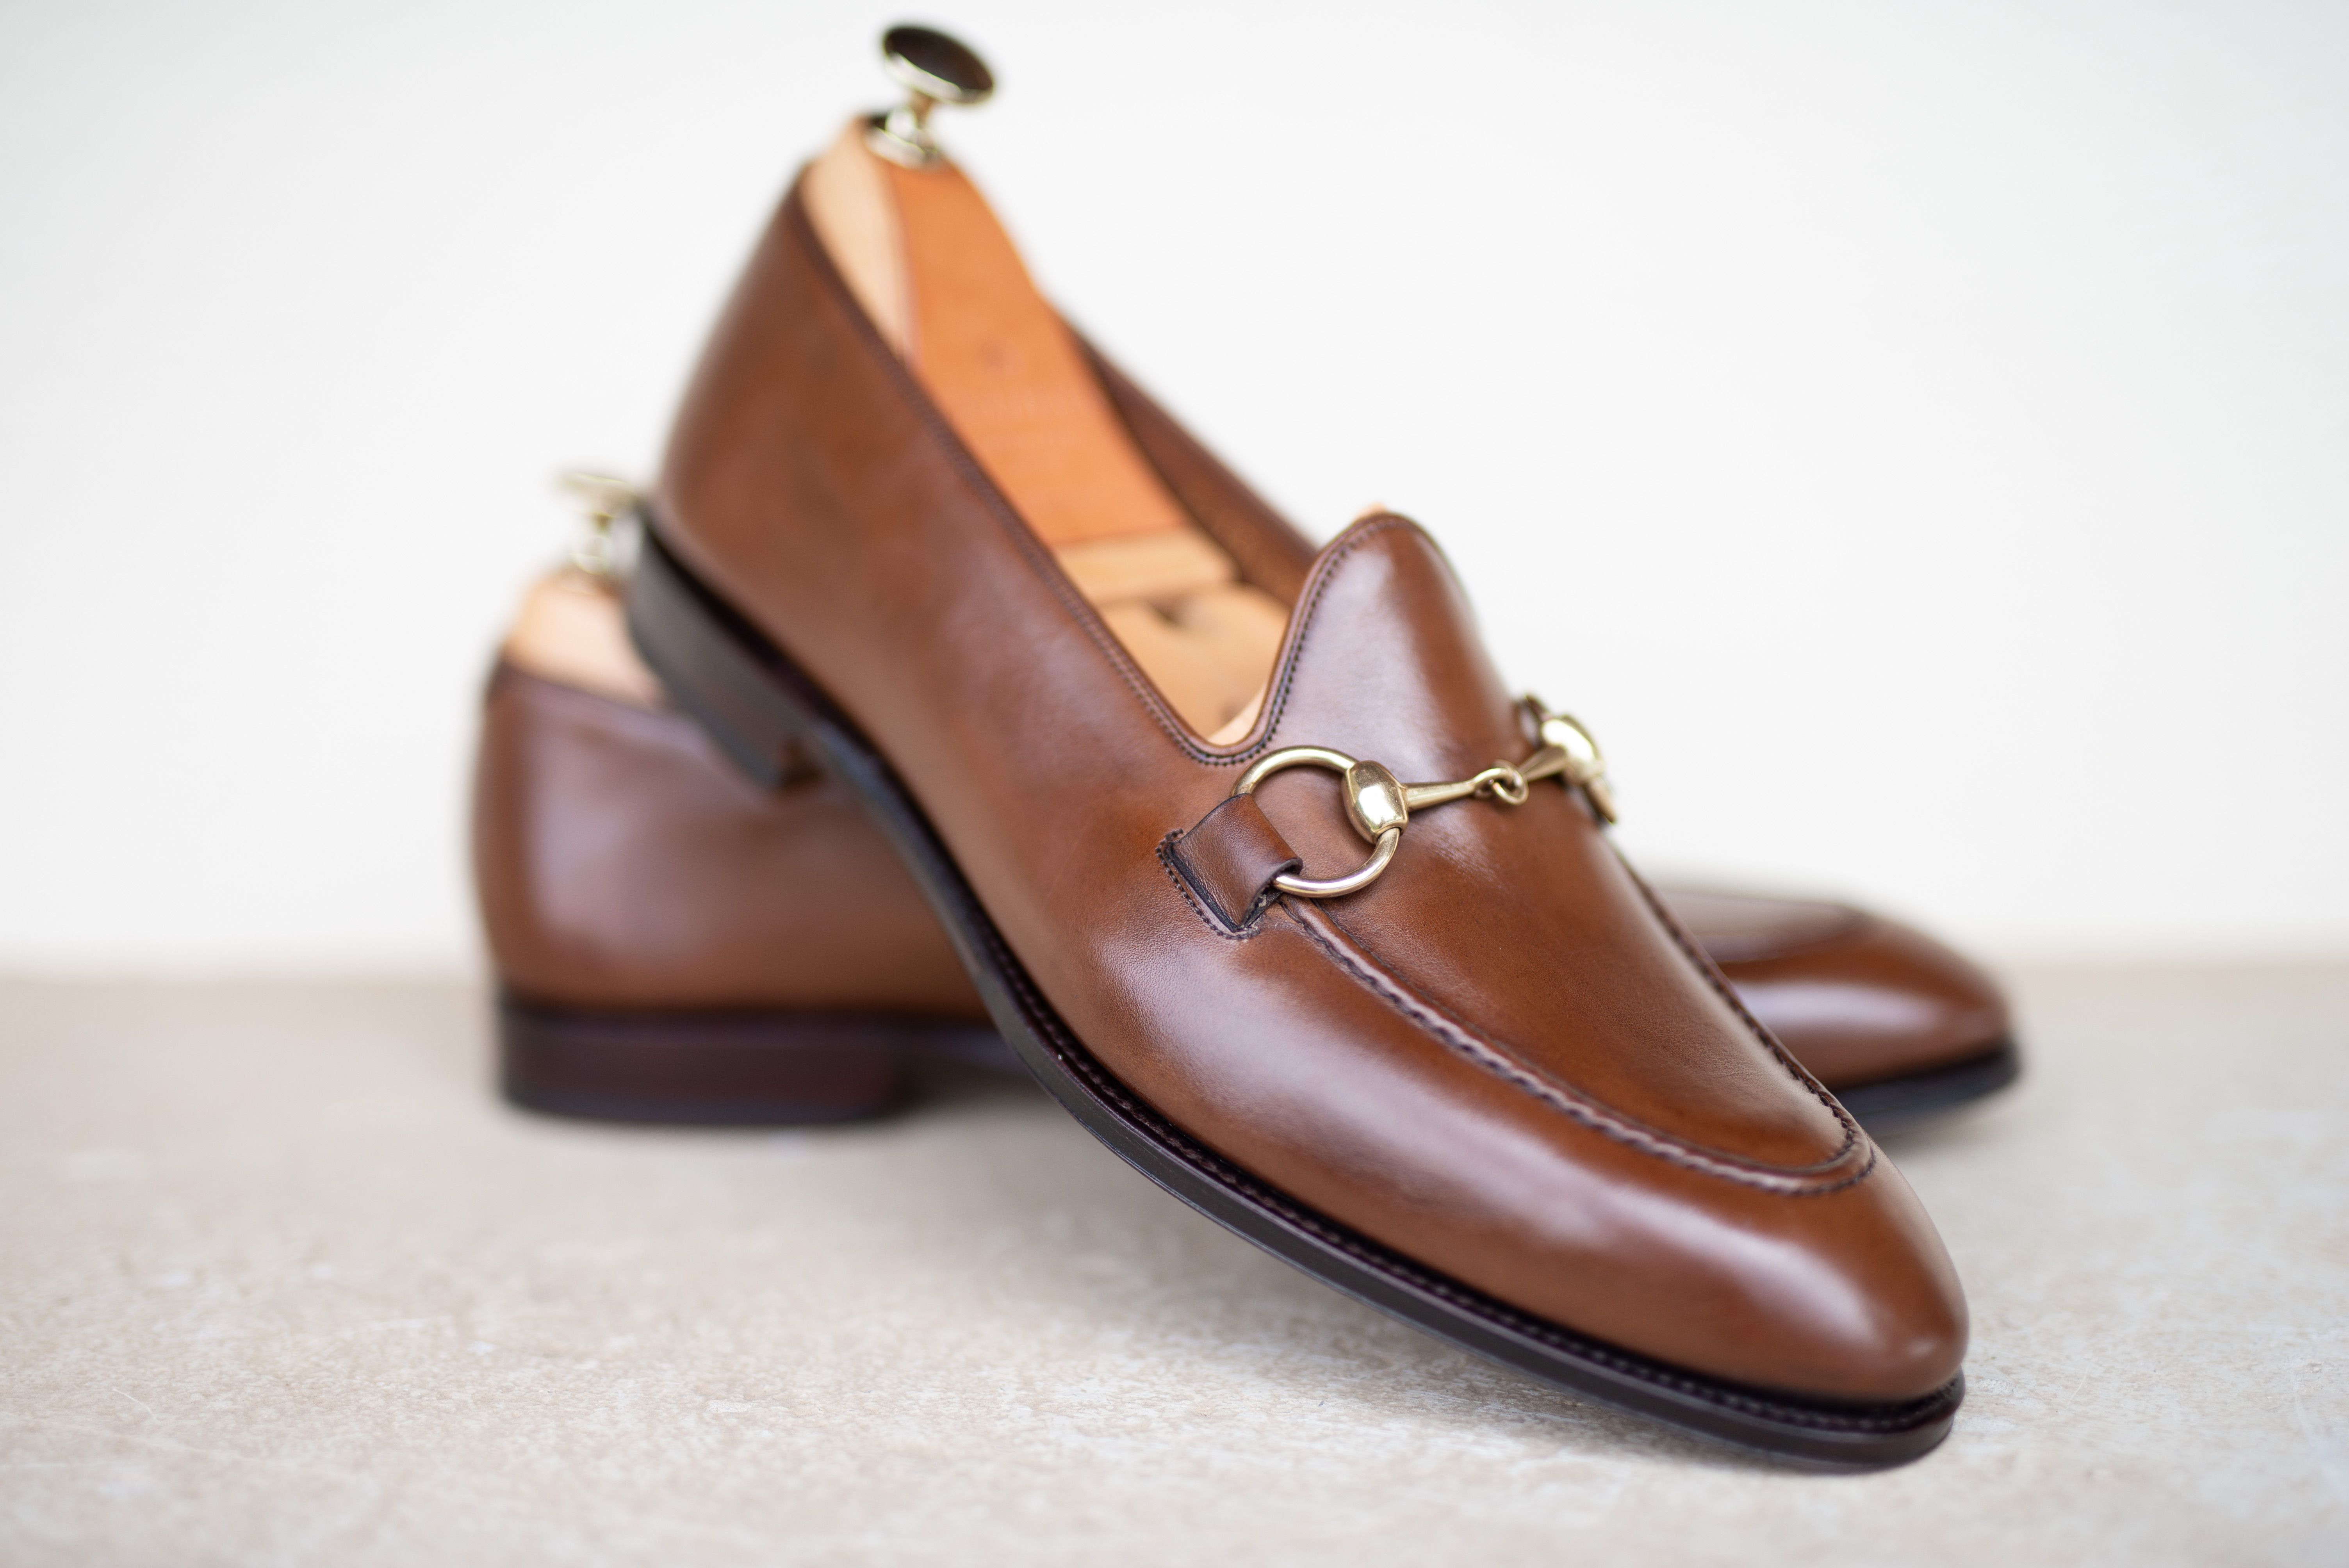 713a3caf360 UNLINED HORSEBIT LOAFERS 80643 UETAM IN BROWN VEGANO